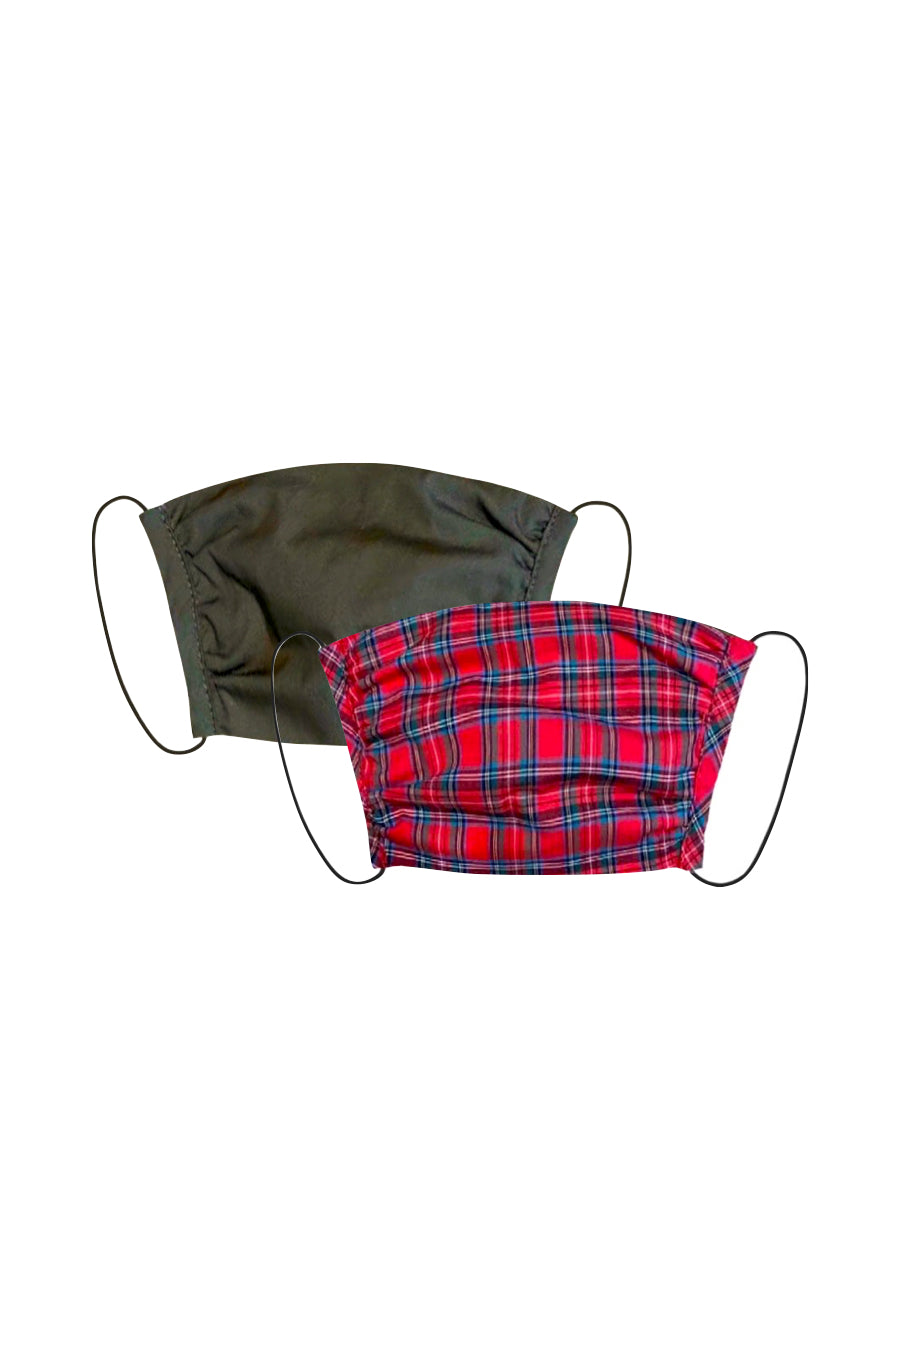 KES Peace Face Covering - Military Cotton/Red Gingham (2 in 1 Pack)